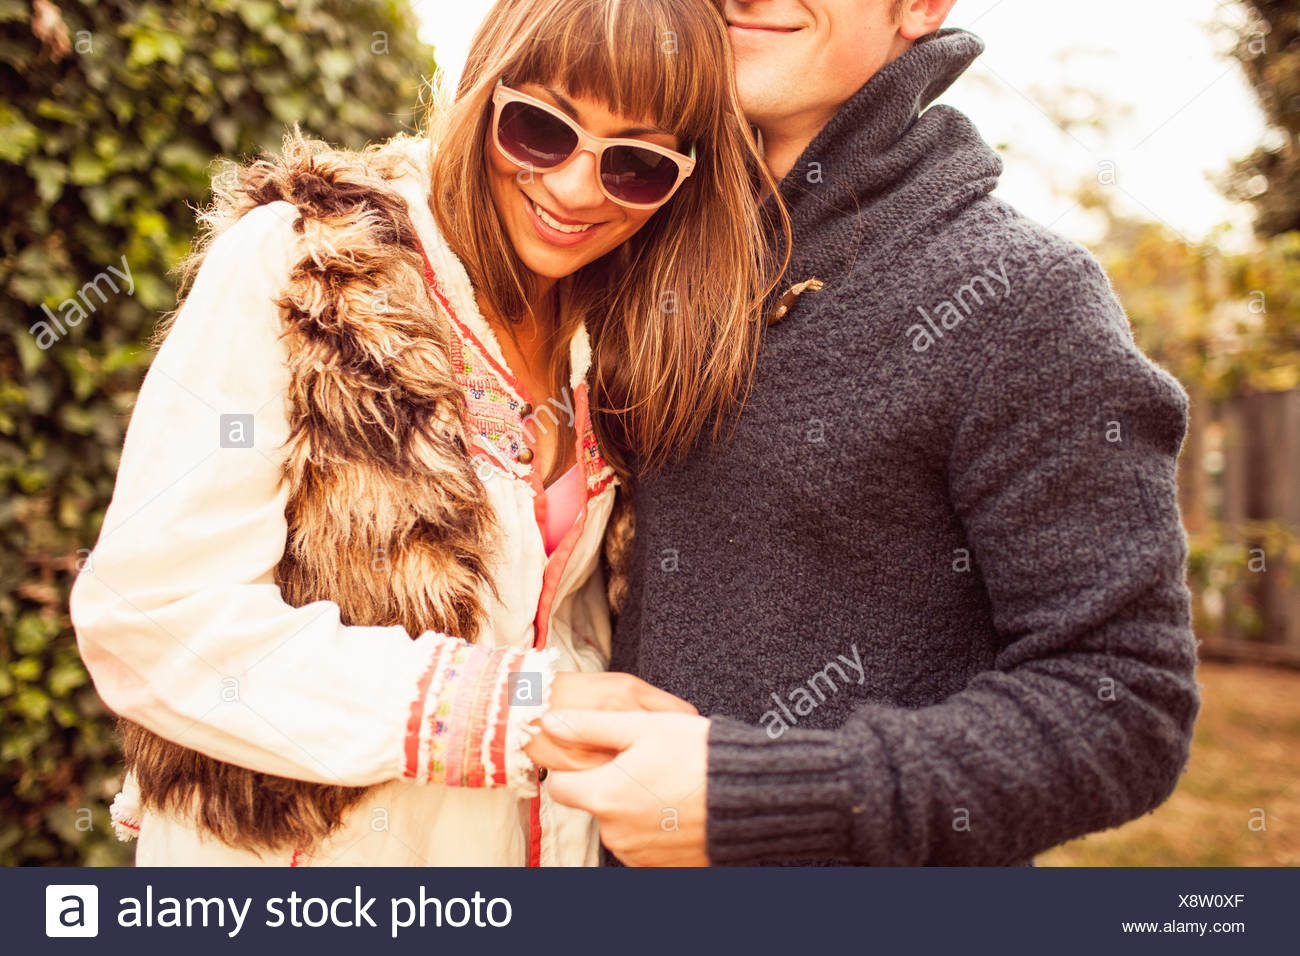 Couple holding hands laughing, cropped Photo Stock